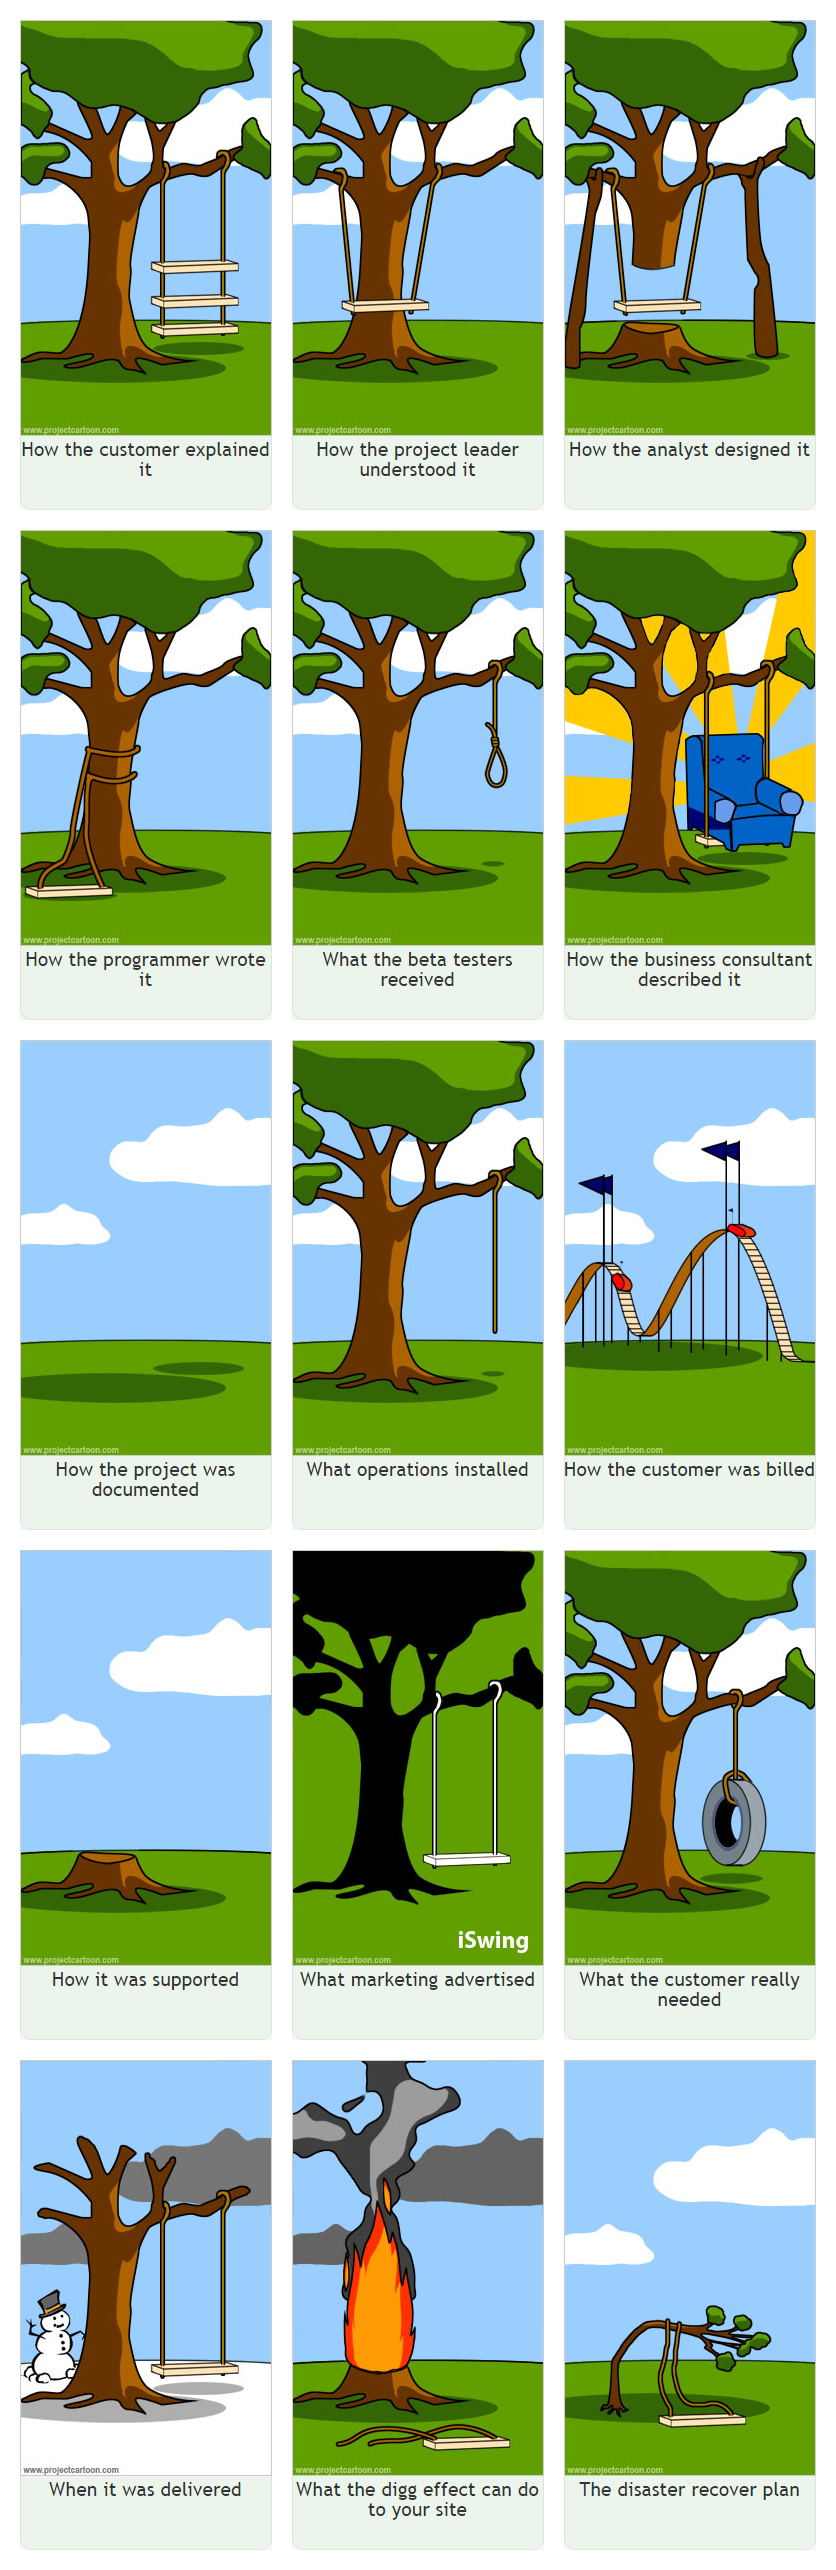 Project Cartoon tree swing project management cartoon